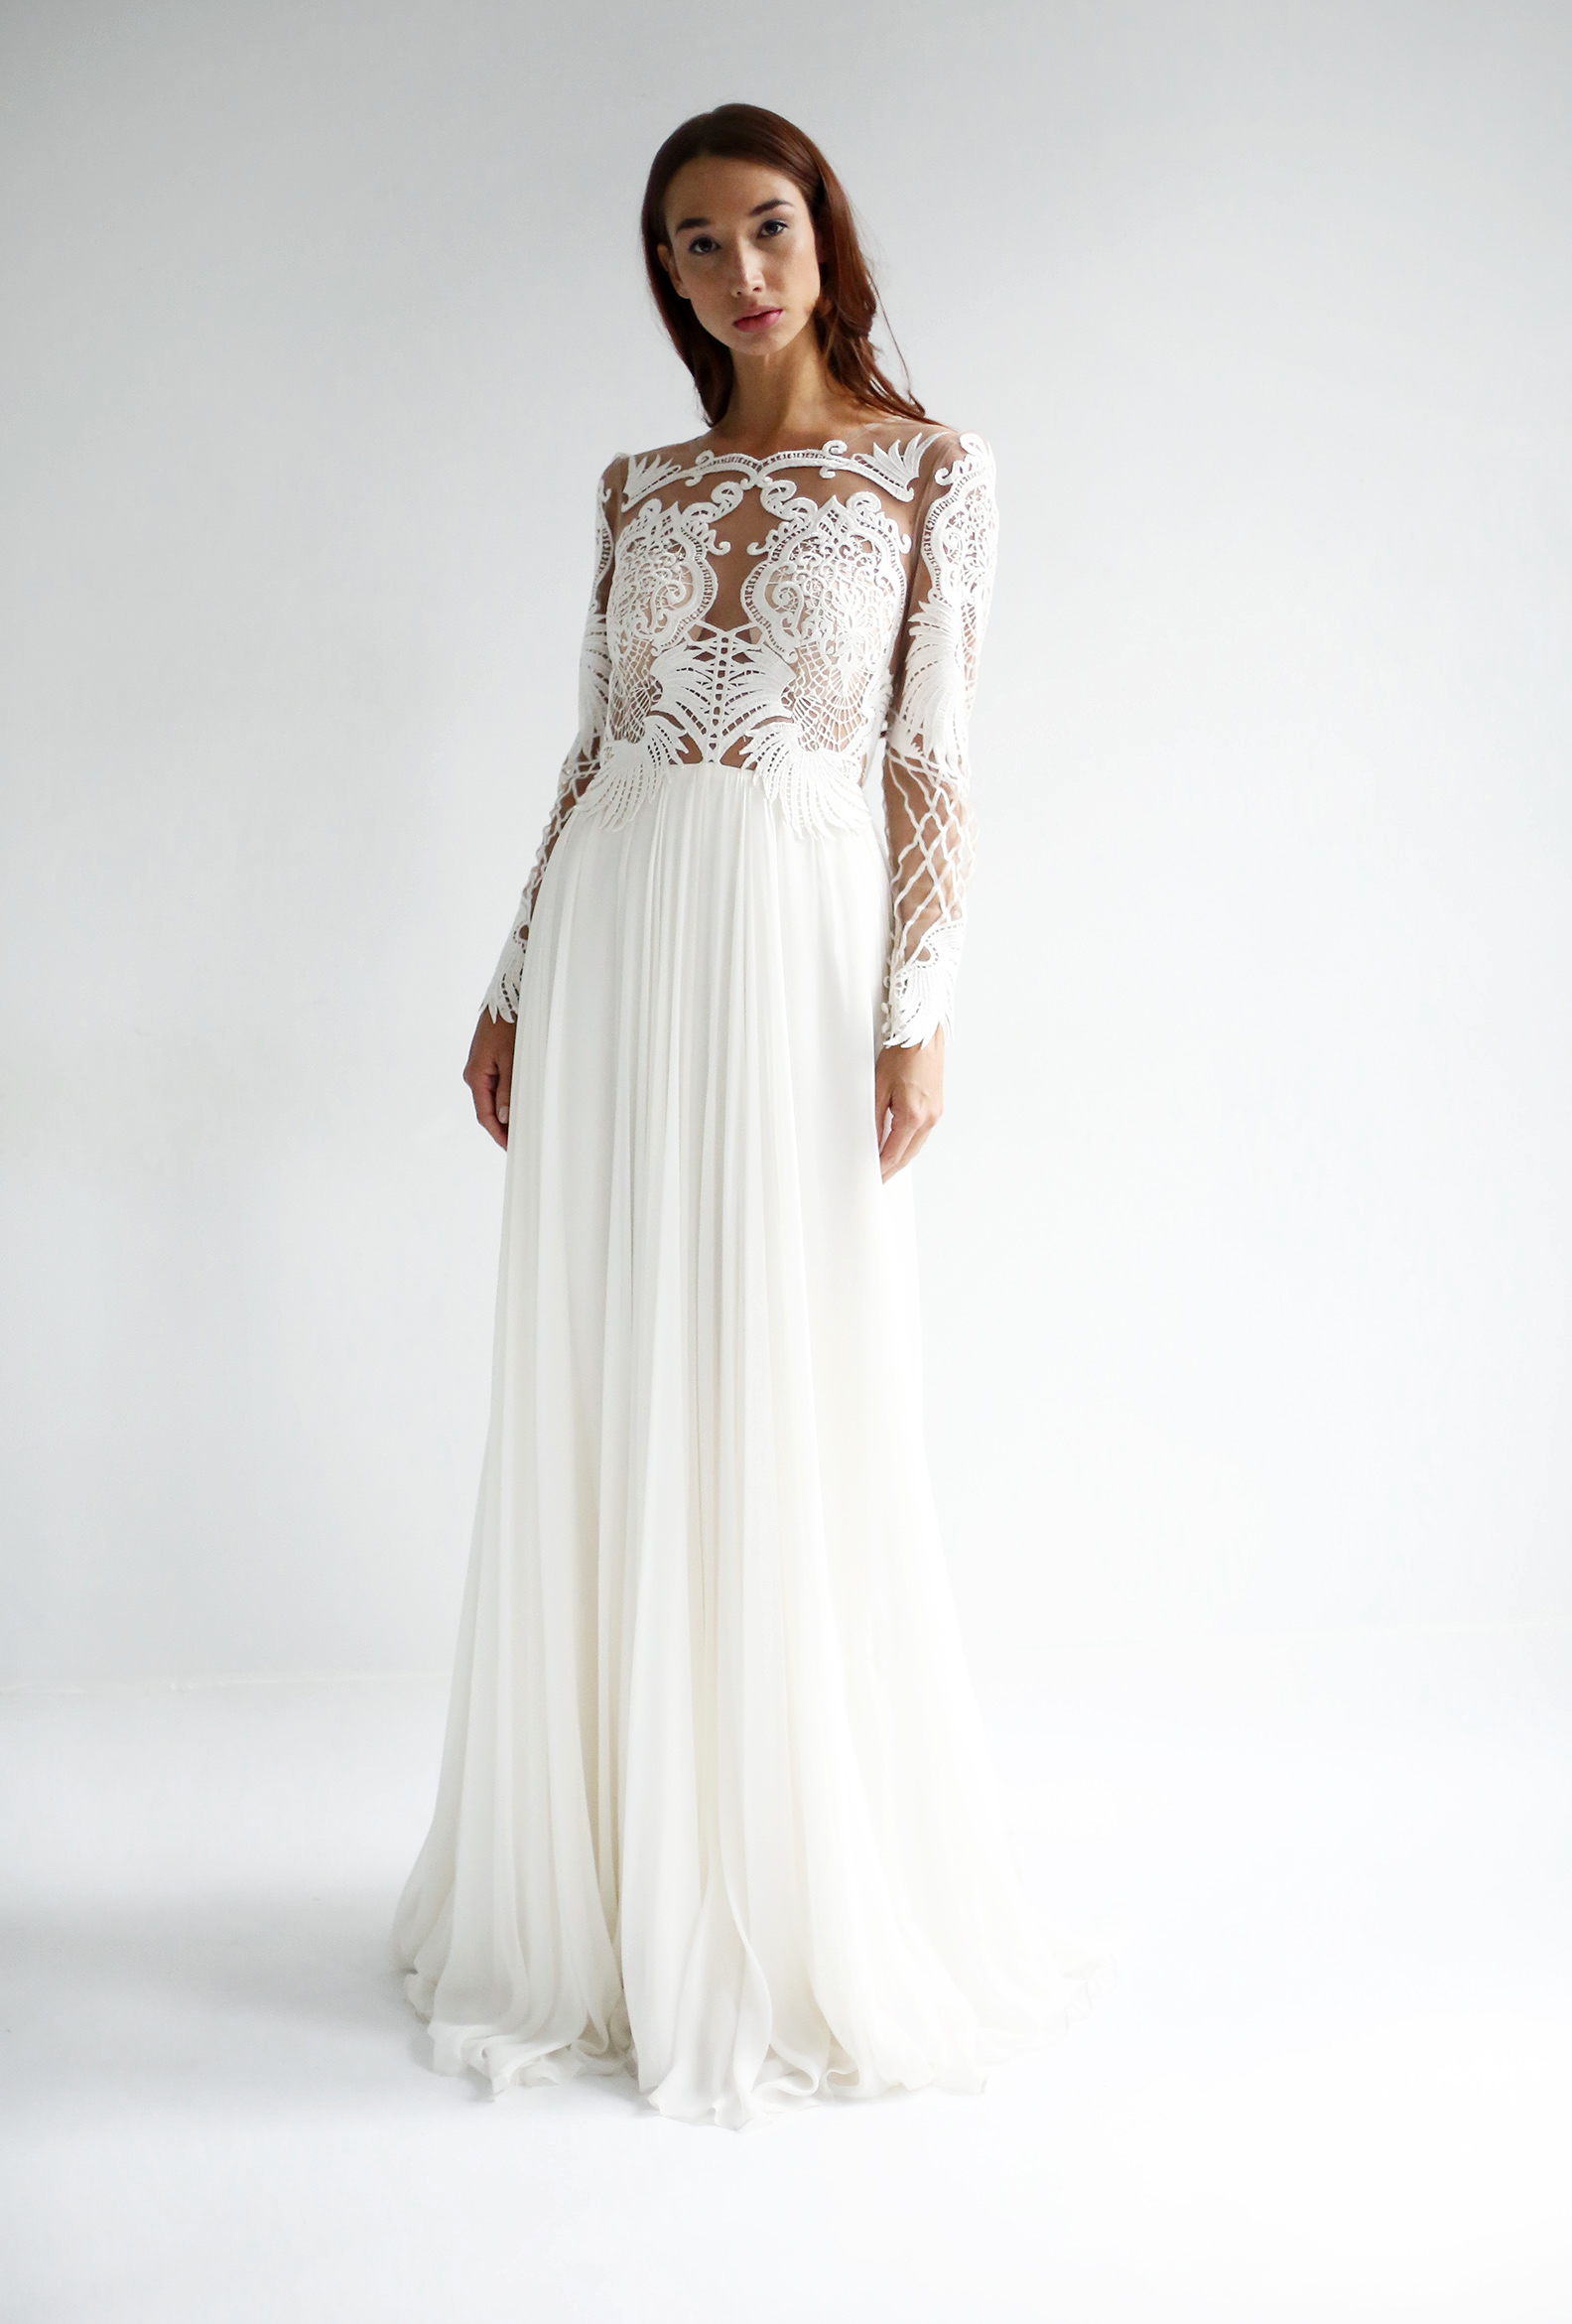 leanne marshall wedding dress spring 2019 lace long sleeves a-line